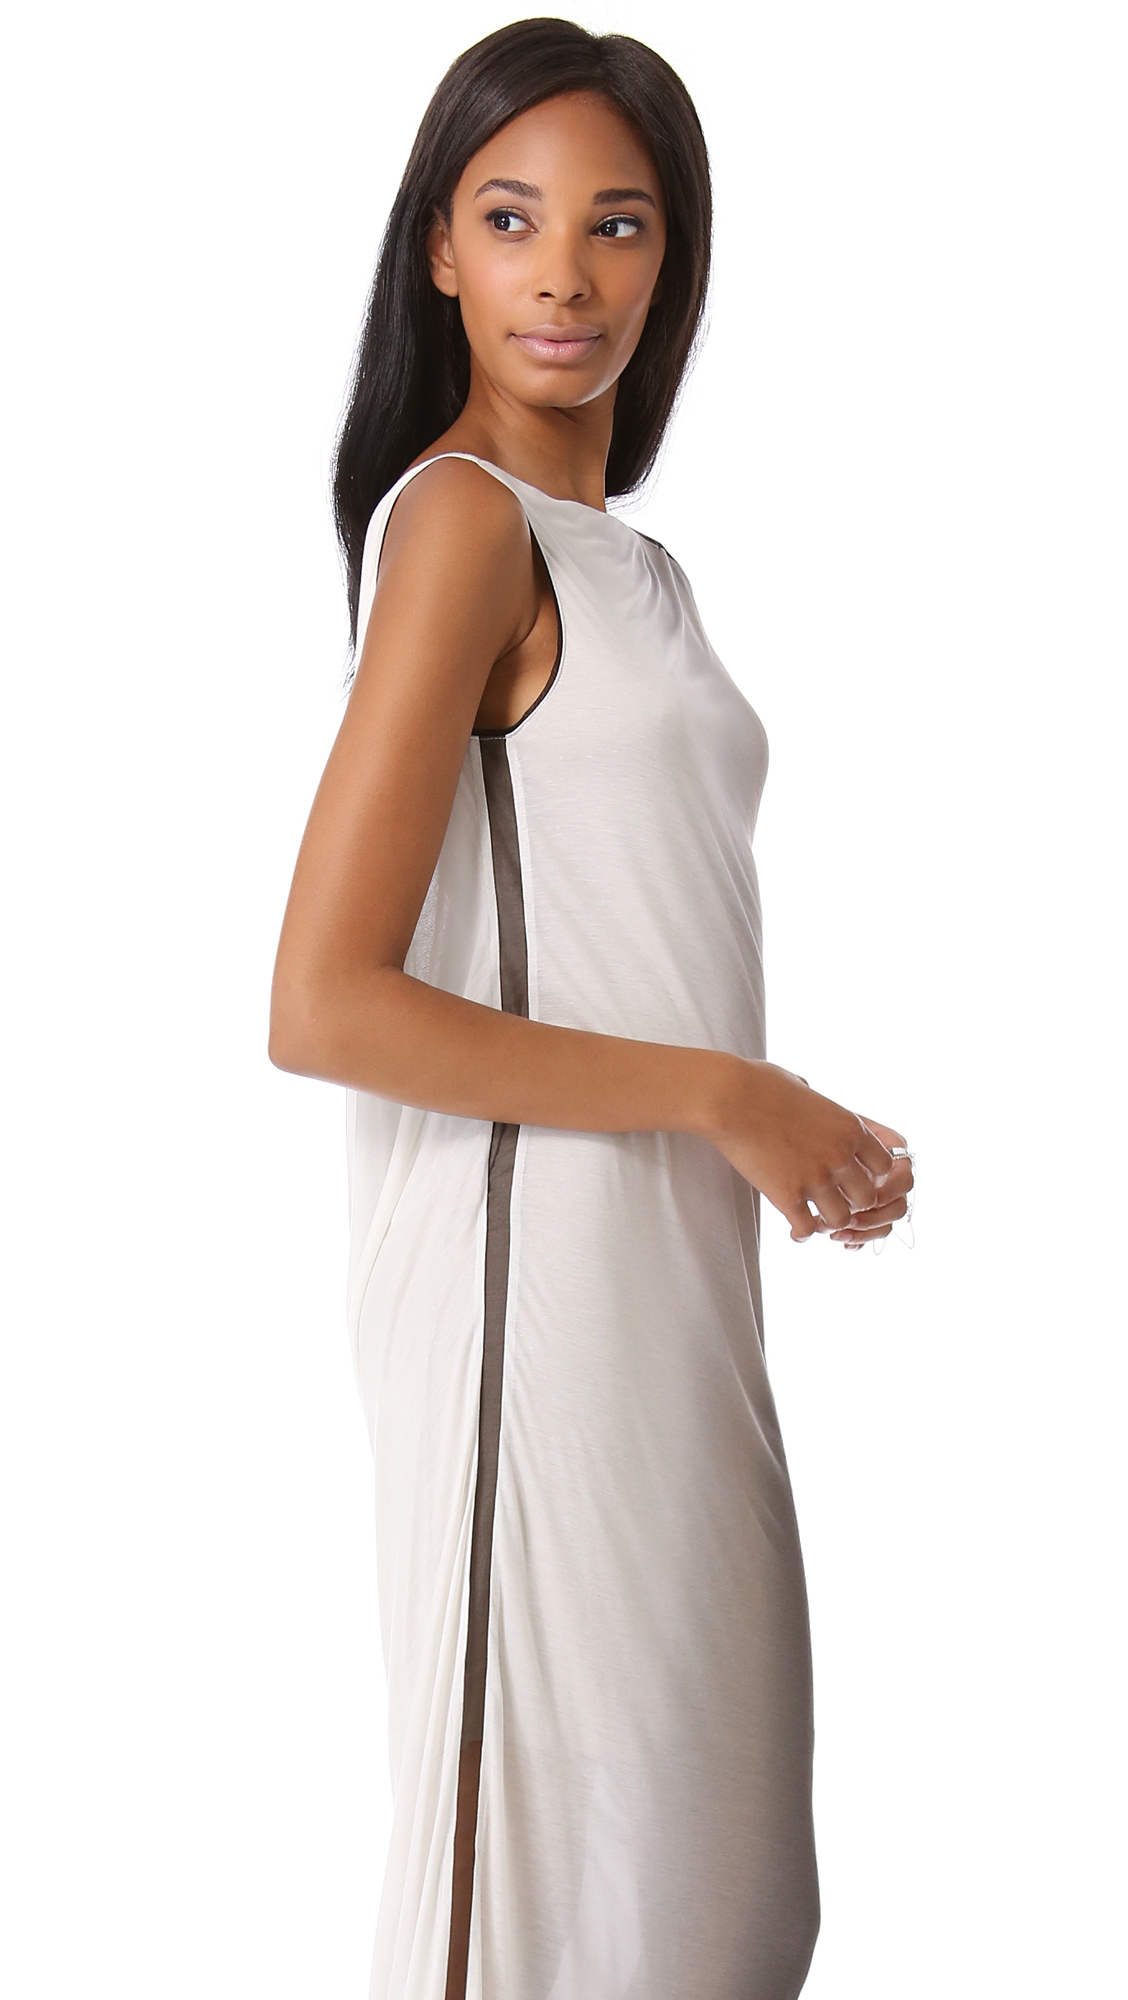 Helmut lang ombre dress